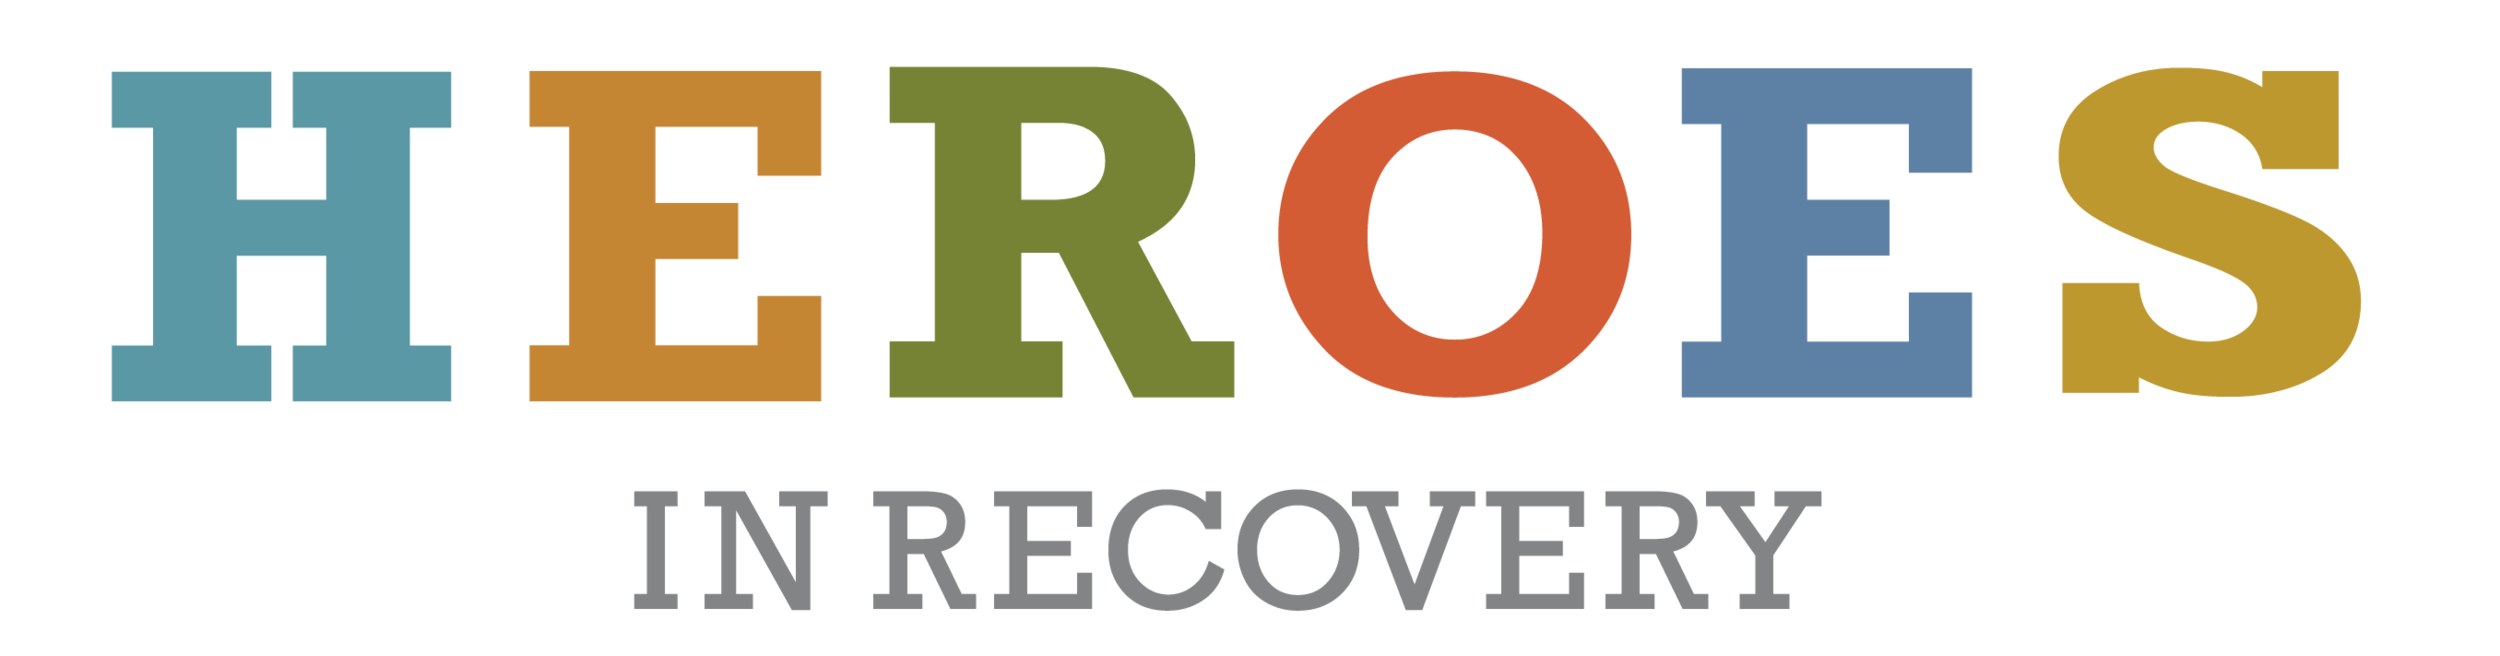 Heroes-In-Recovery-Logo.png